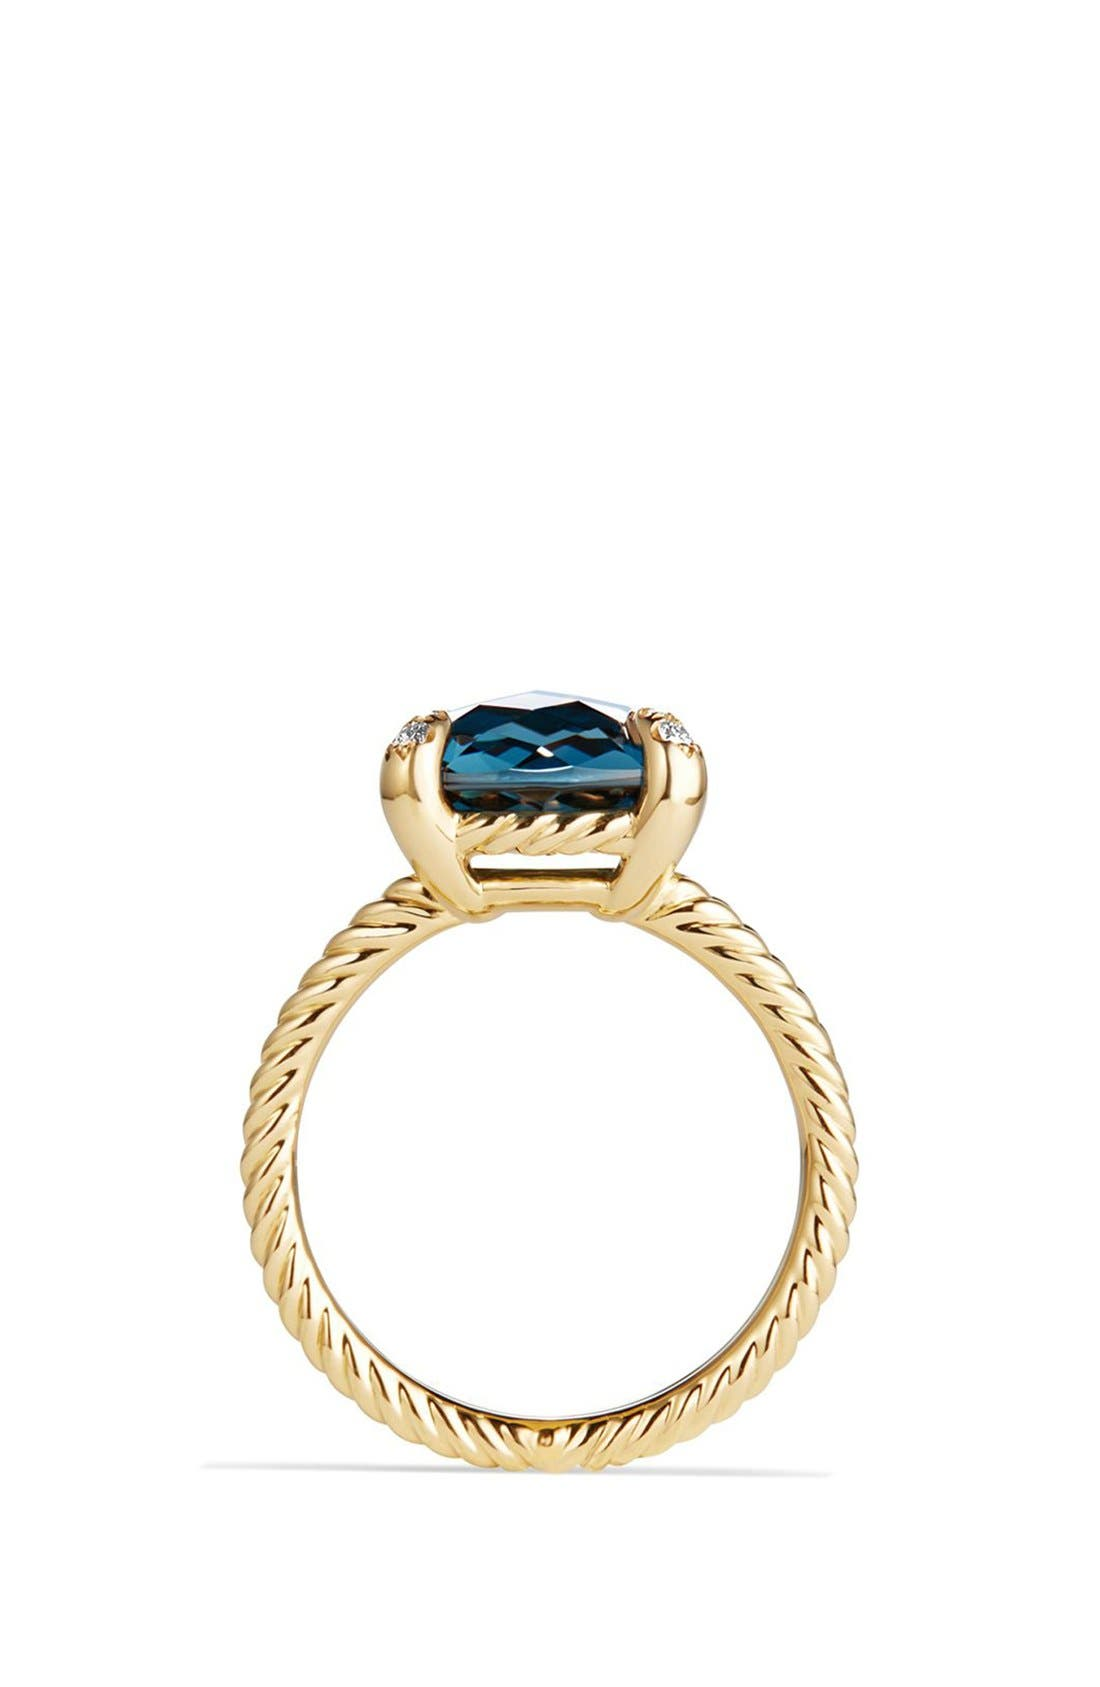 Châtelaine Ring with Hampton Blue Topaz and Diamonds in 18K Gold,                             Alternate thumbnail 2, color,                             Hampton Blue Topaz